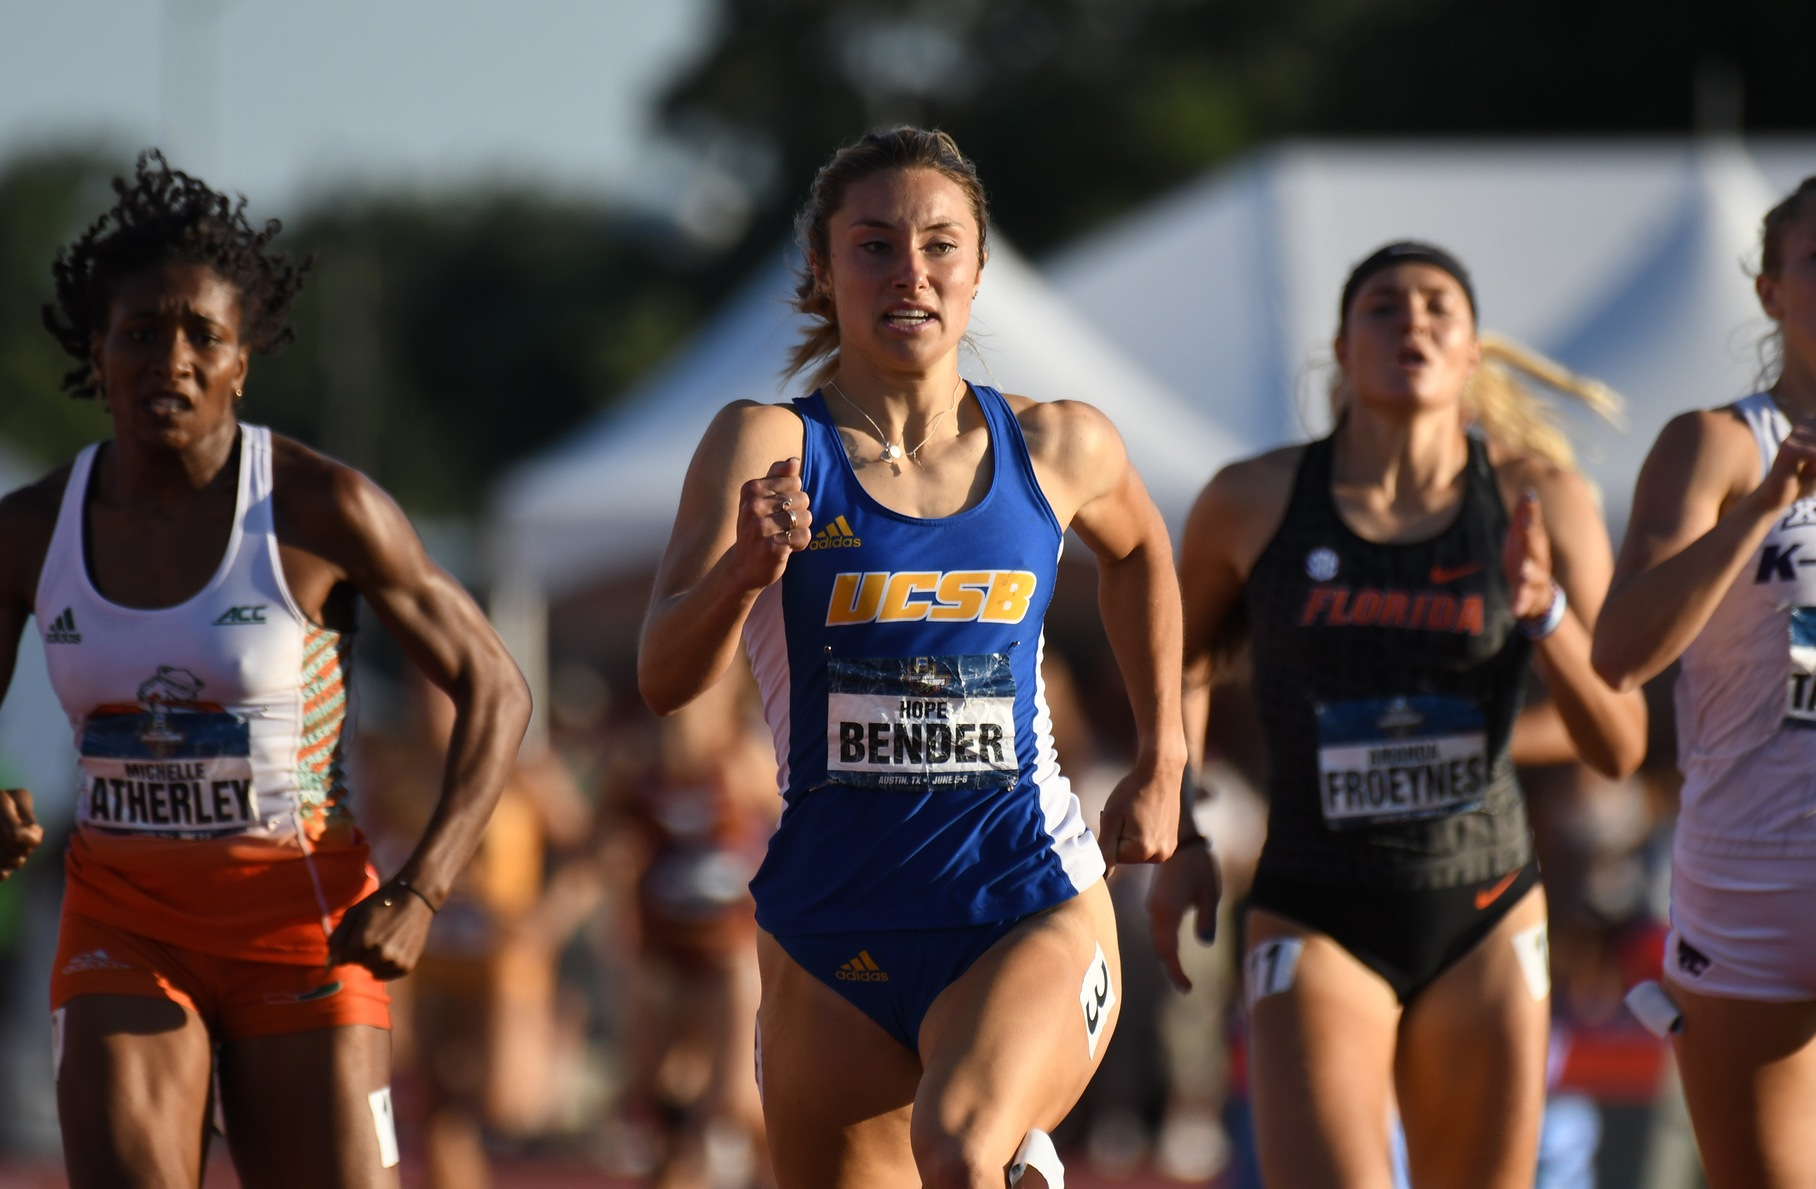 Hope Bender Fourth in Women's Heptathlon at NCAA Championships